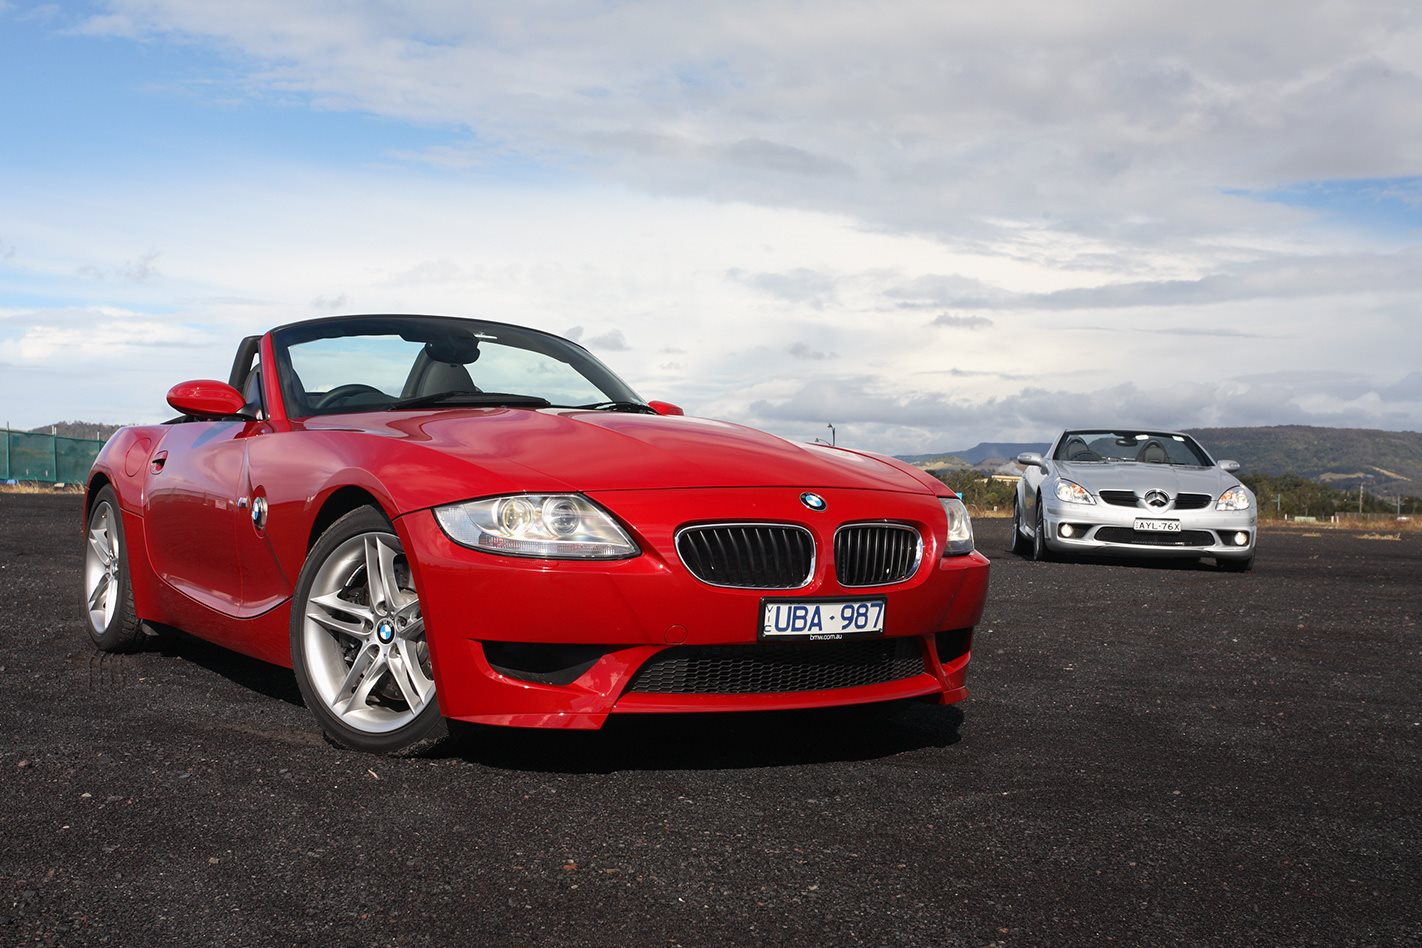 2006 BMW Z4 M vs Mercedes AMG SLK55 front